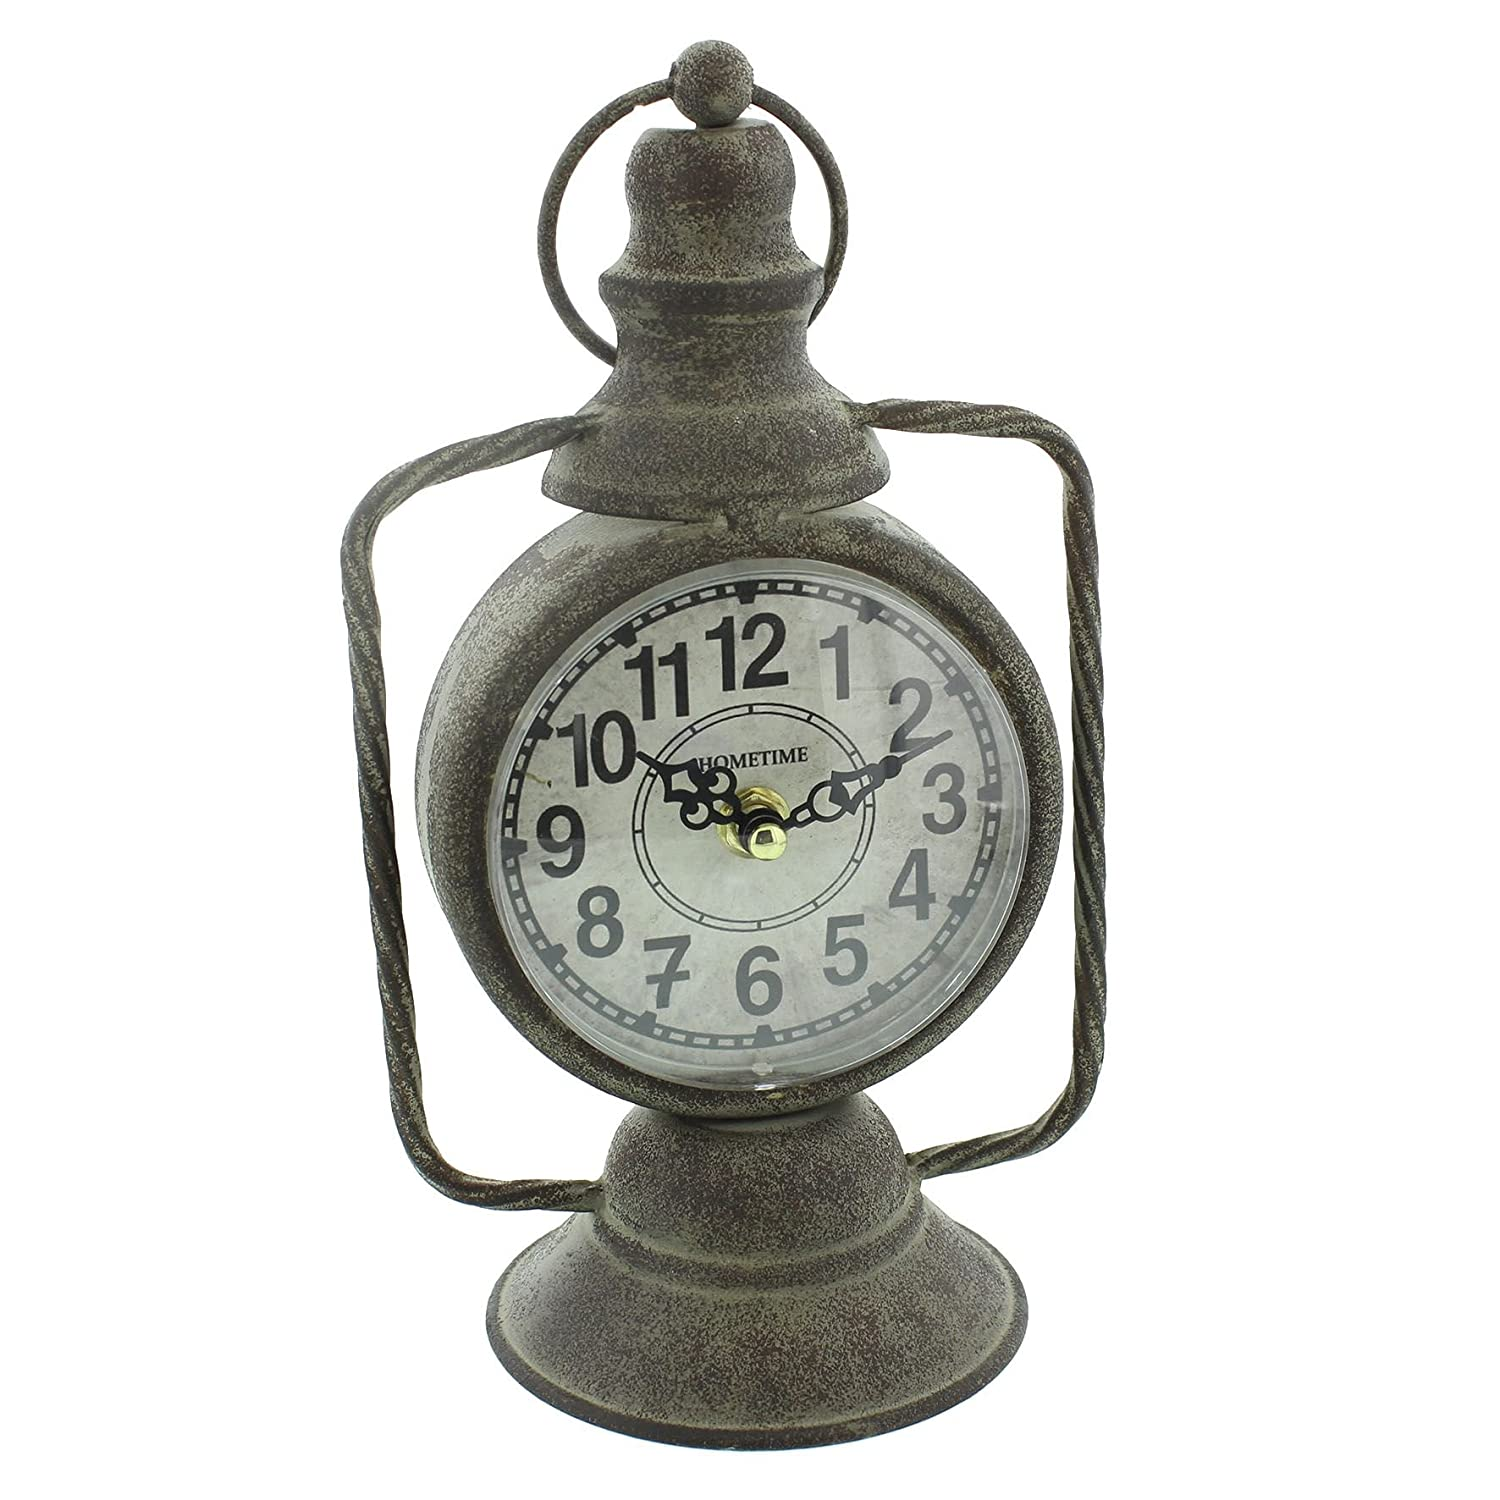 Black Old Lantern Design Mantel Clock by Hometime Watching Clocks